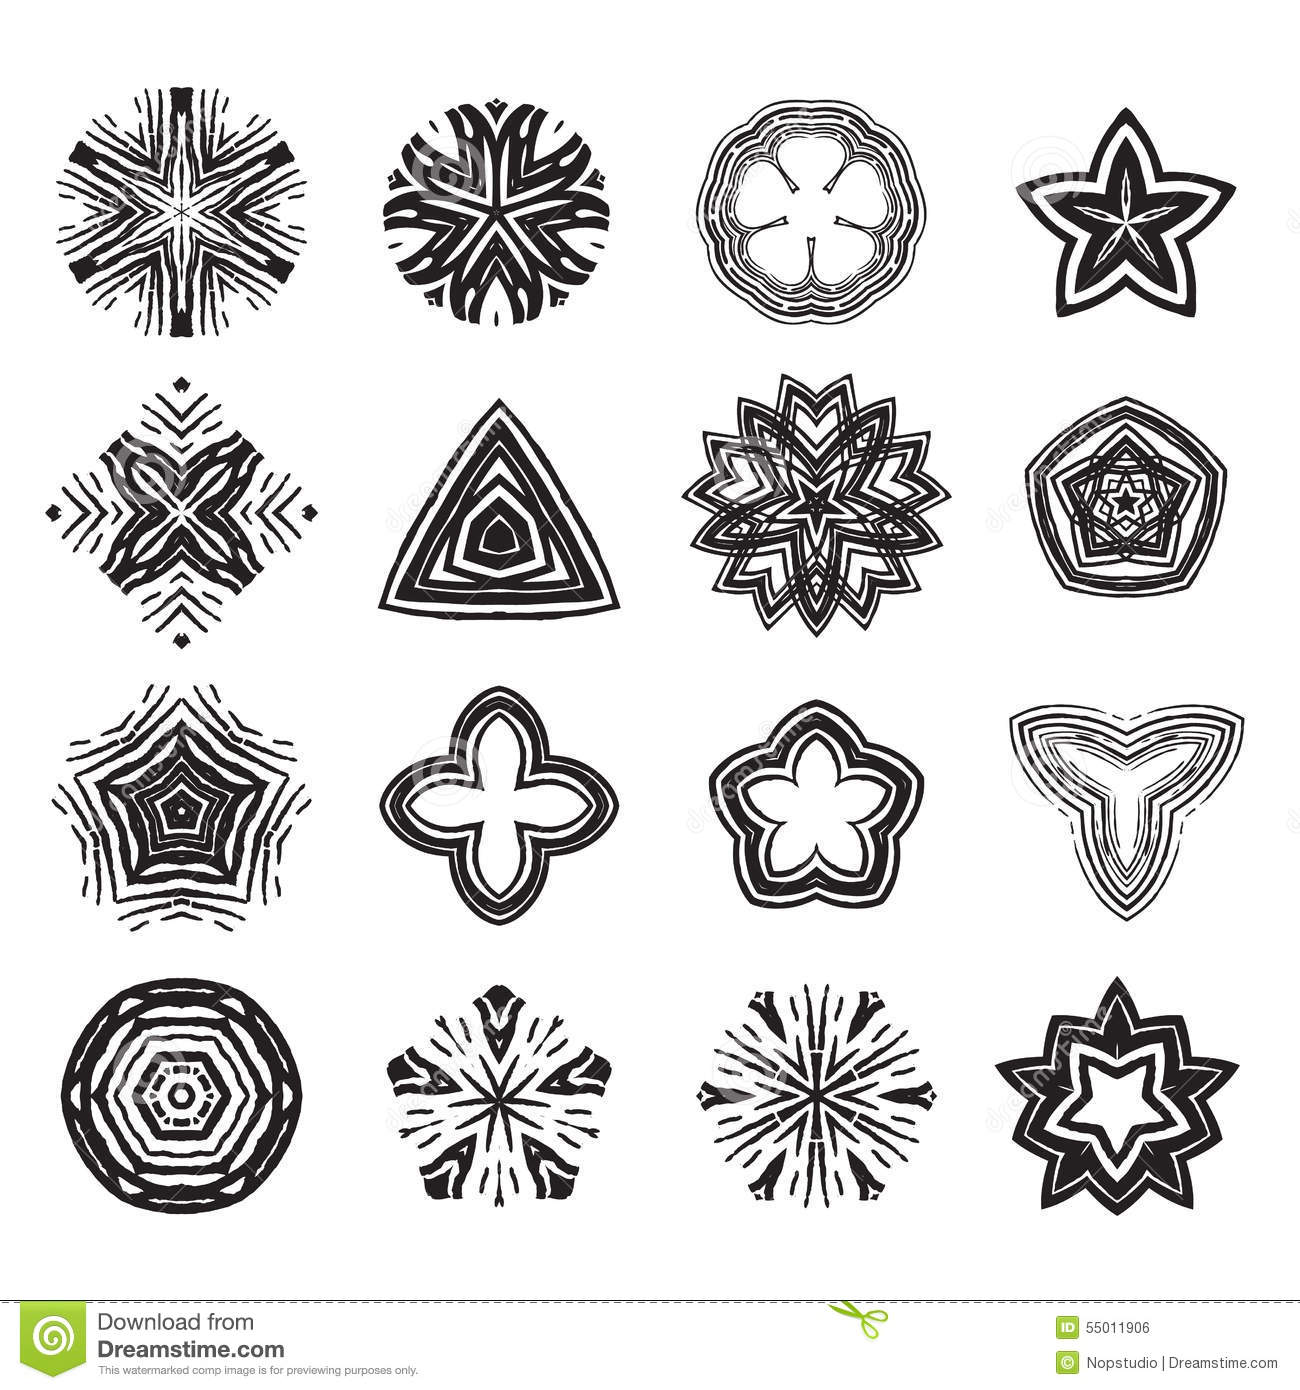 Ornament black and white line art design set stock vector image 55011906 - Design art black and white ...